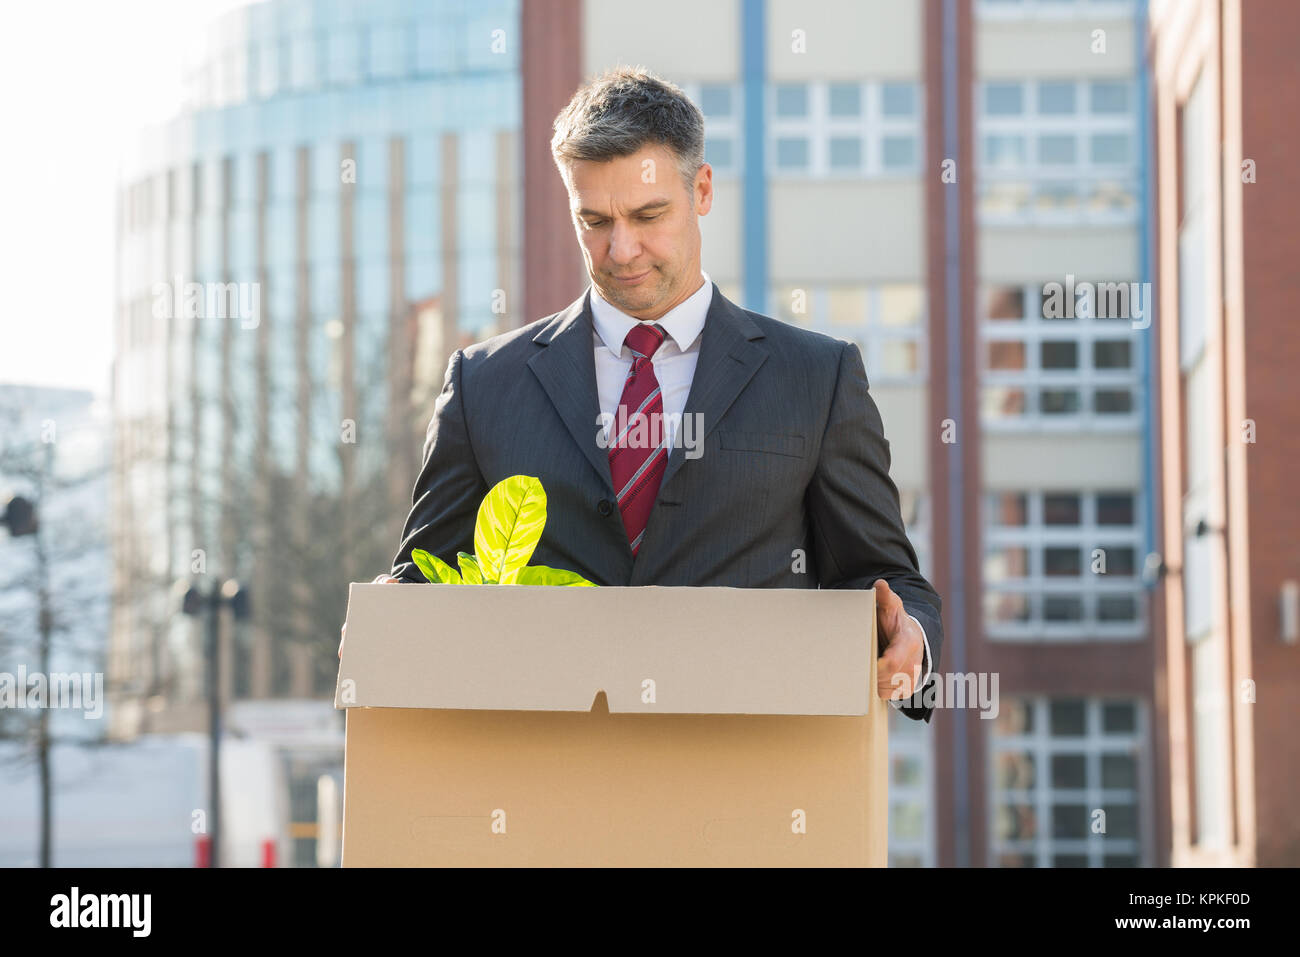 Businessman Standing With Cardboard Box Outside Office - Stock Image